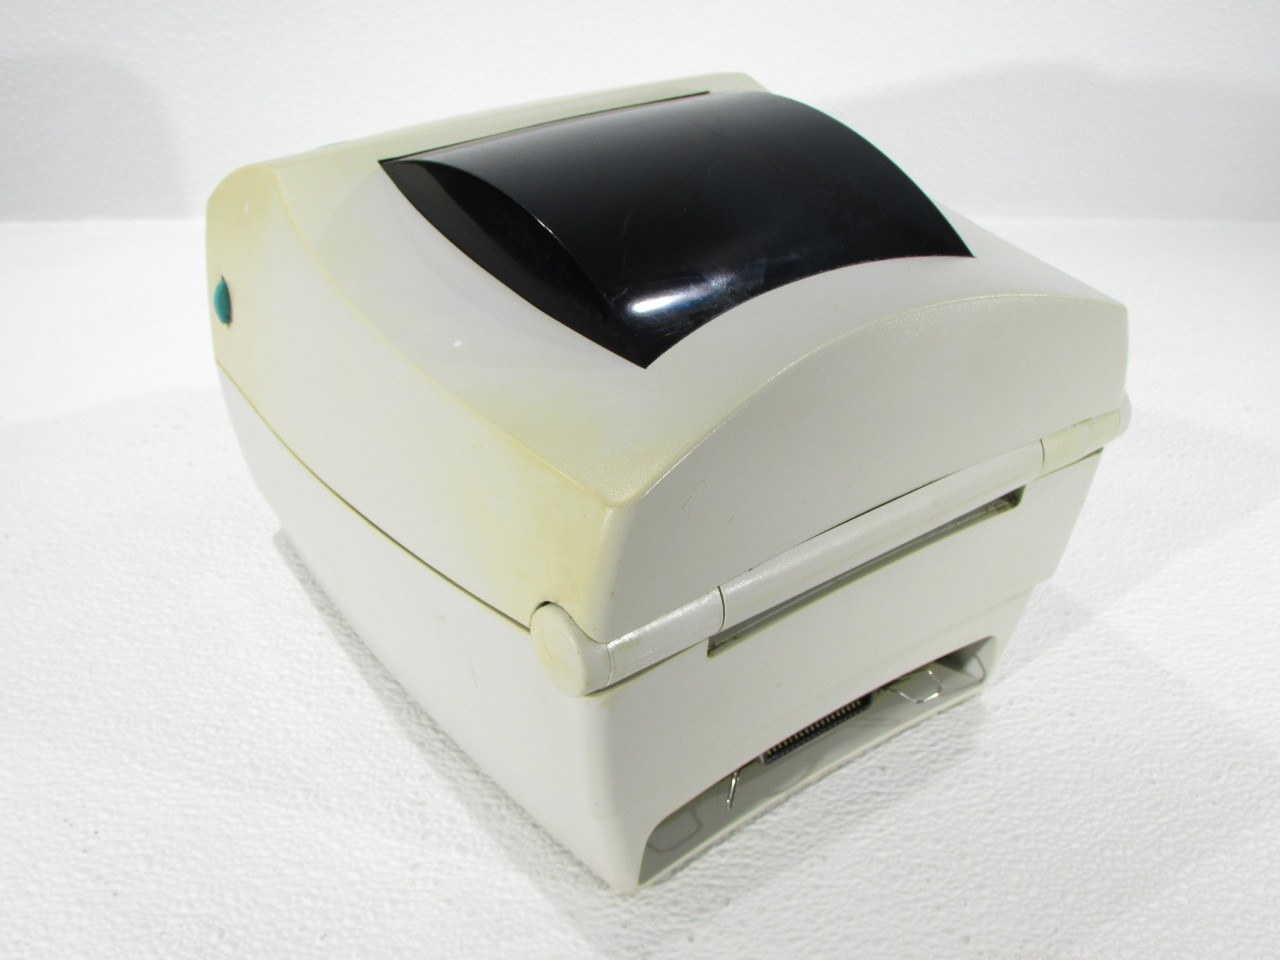 zebra tlp2844 thermal label printer 2844 10300 0001 premier equipment solutions inc. Black Bedroom Furniture Sets. Home Design Ideas